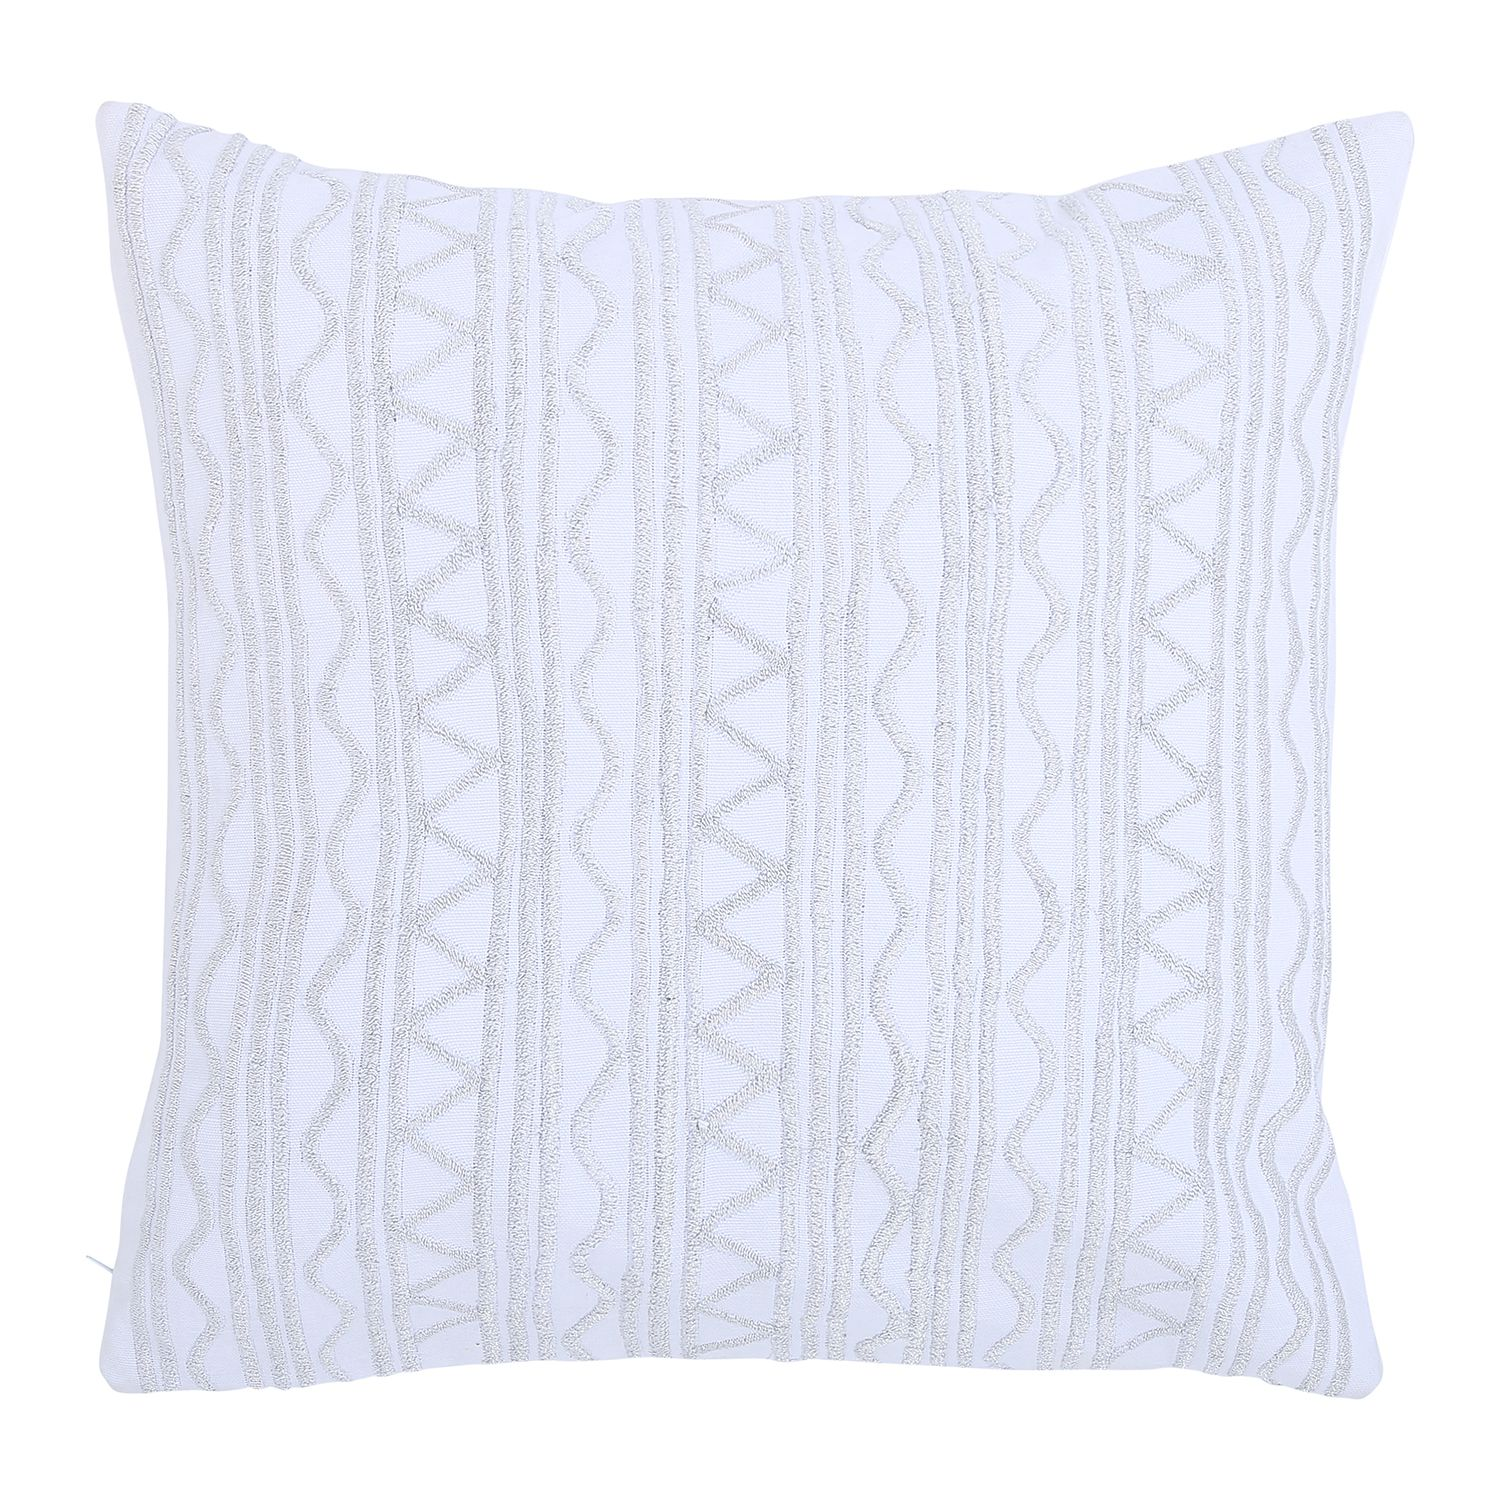 Home And We Set of 2 Cotton Cushion Covers 45X45 cm (18X18)